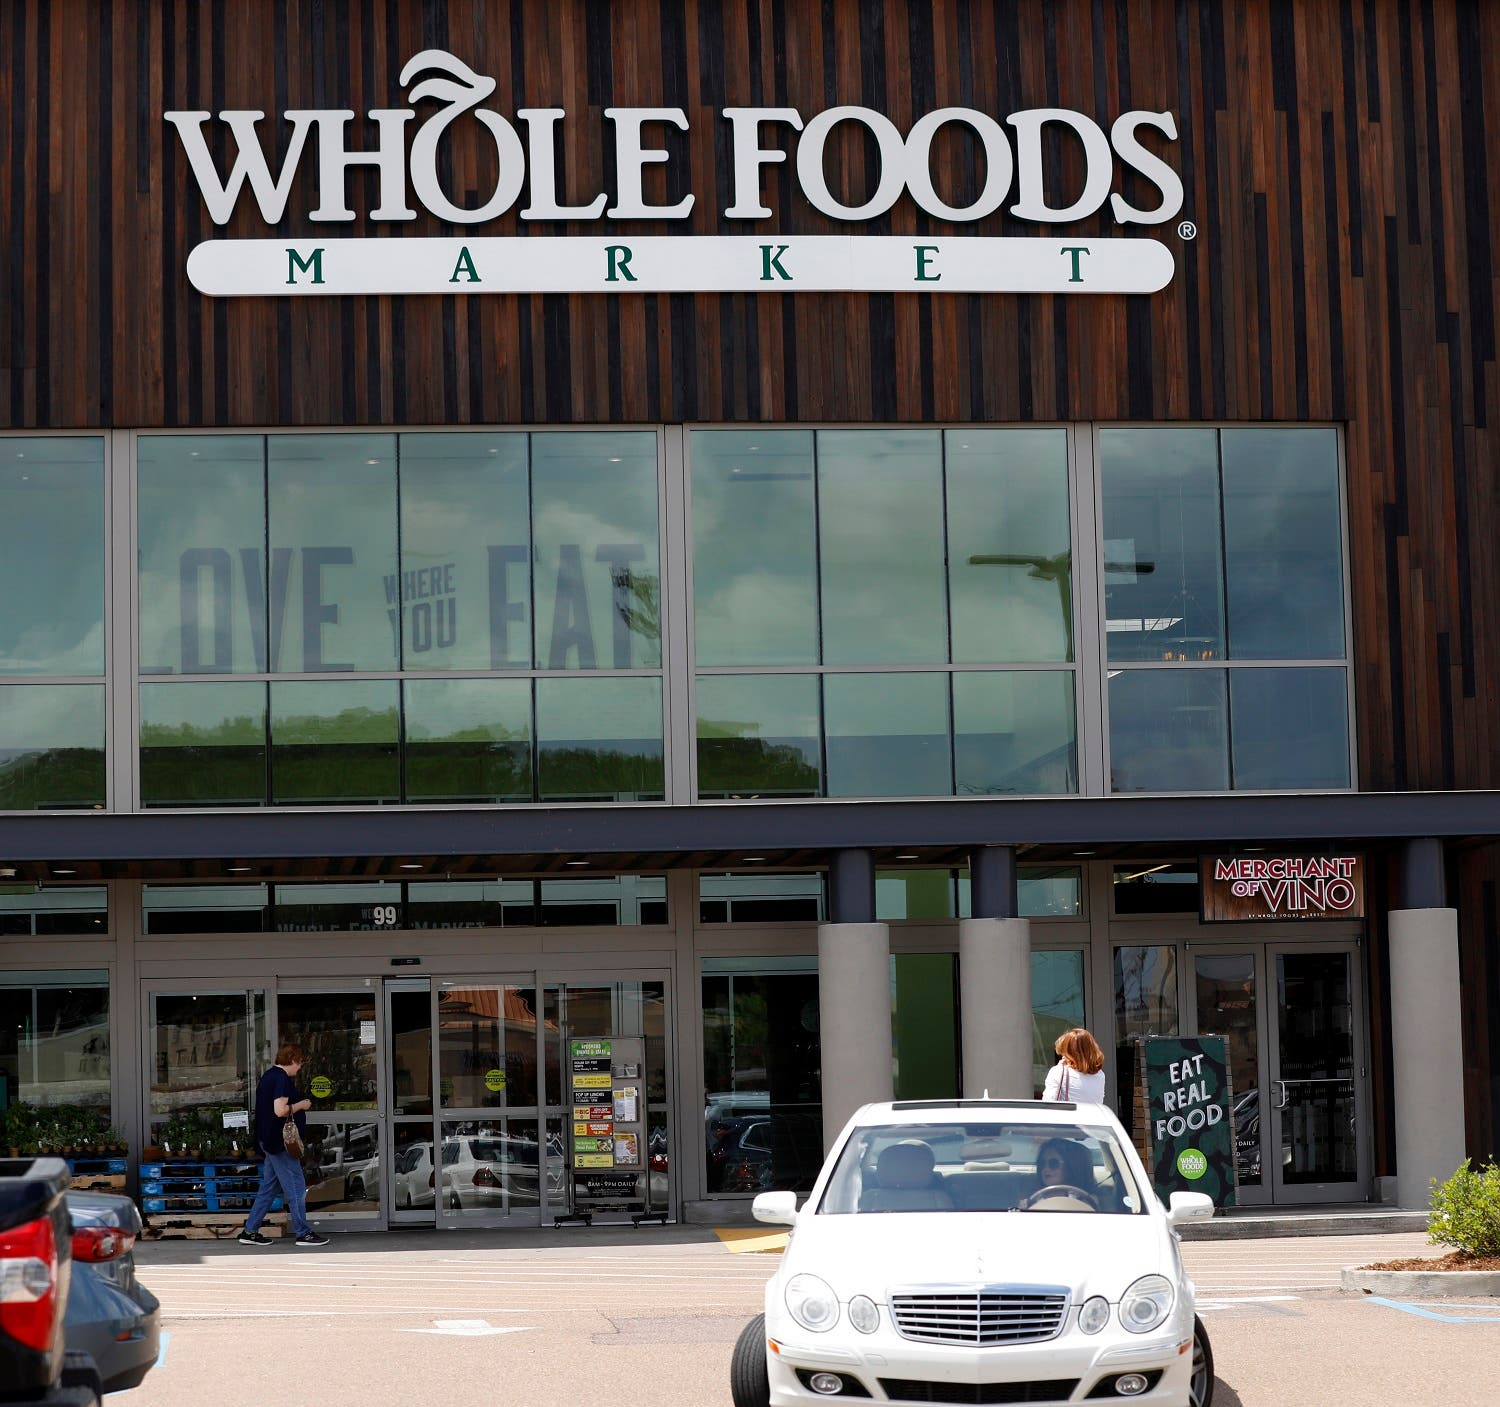 Whole Foods Curbside Grocery Store